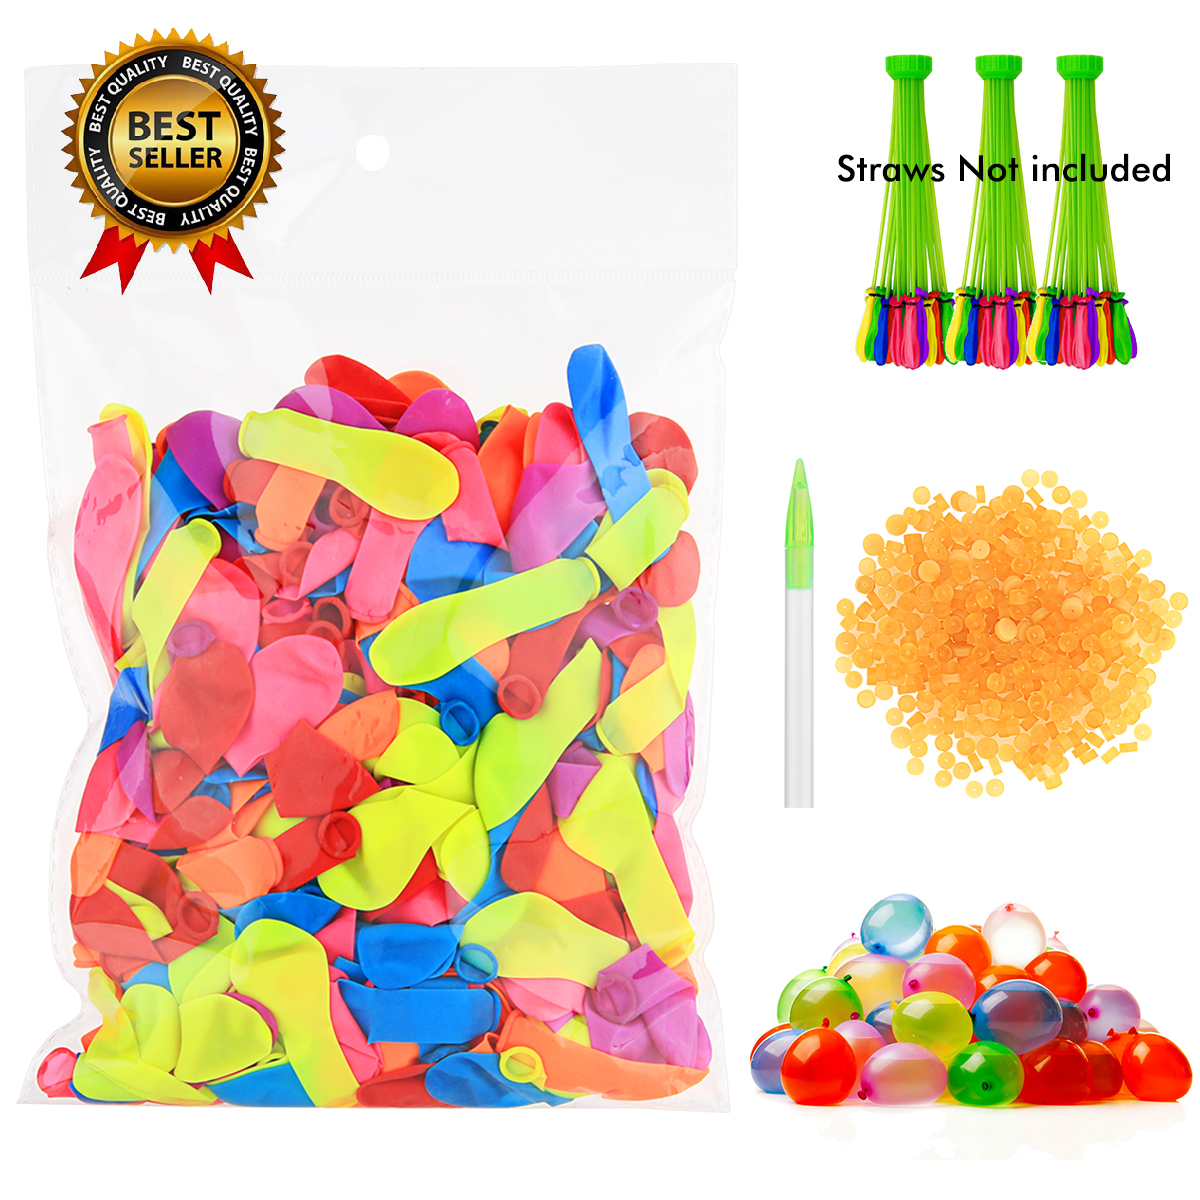 Water Balloons Refill Kit - 1000 Water Balloons + Rubber Bands ,Fastest Way to Refill with Used Straws, Straws not Included!